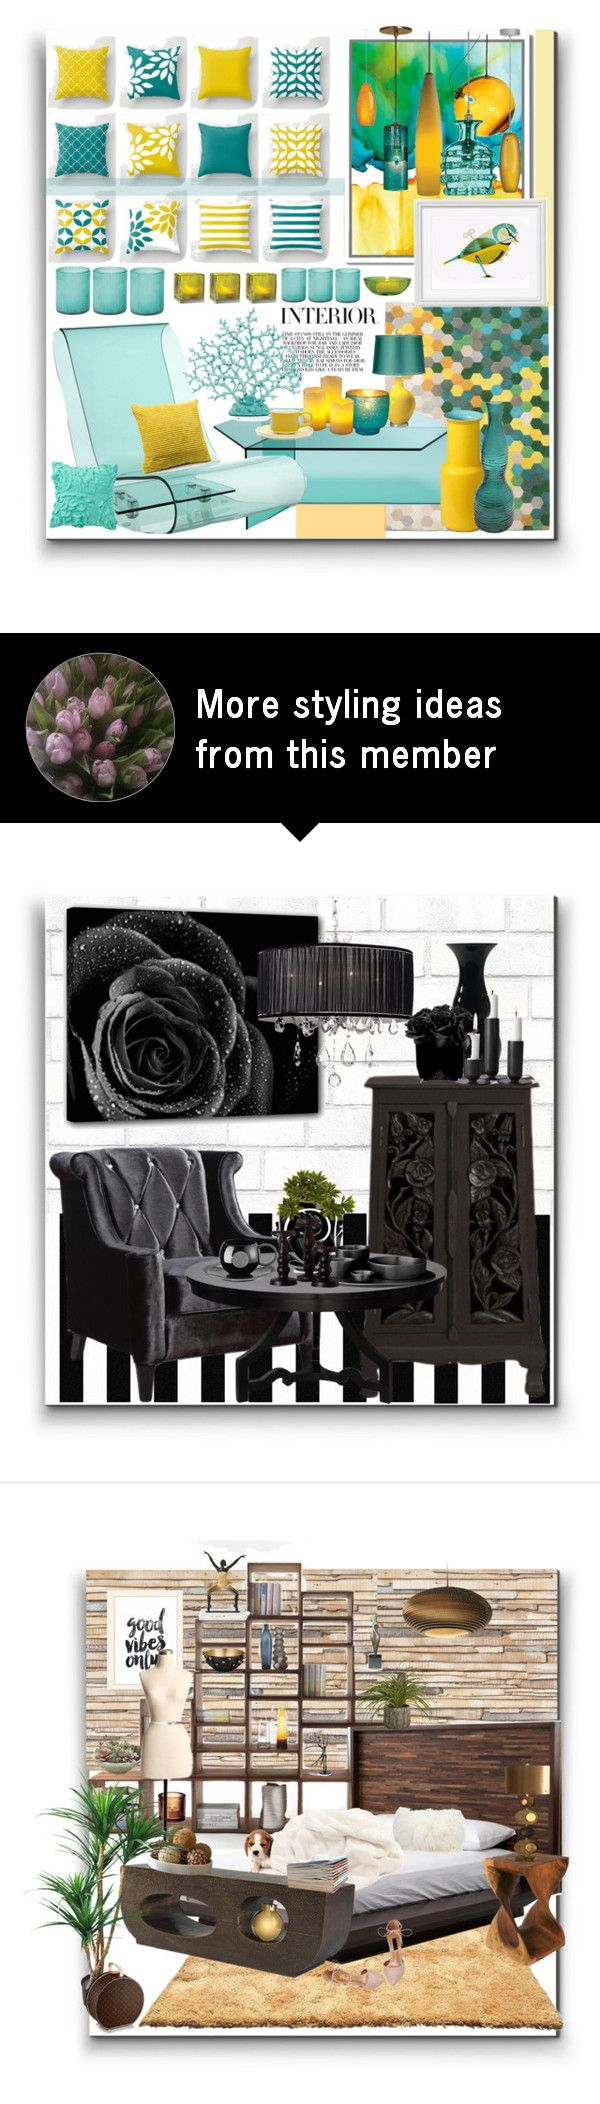 """""""Interior"""" by marionmeyer on Polyvore featuring interior, interiors, interior design, home, home decor, interior decorating, Jamie Young, Cultural Intrigue, West Elm and Tech Lighting"""